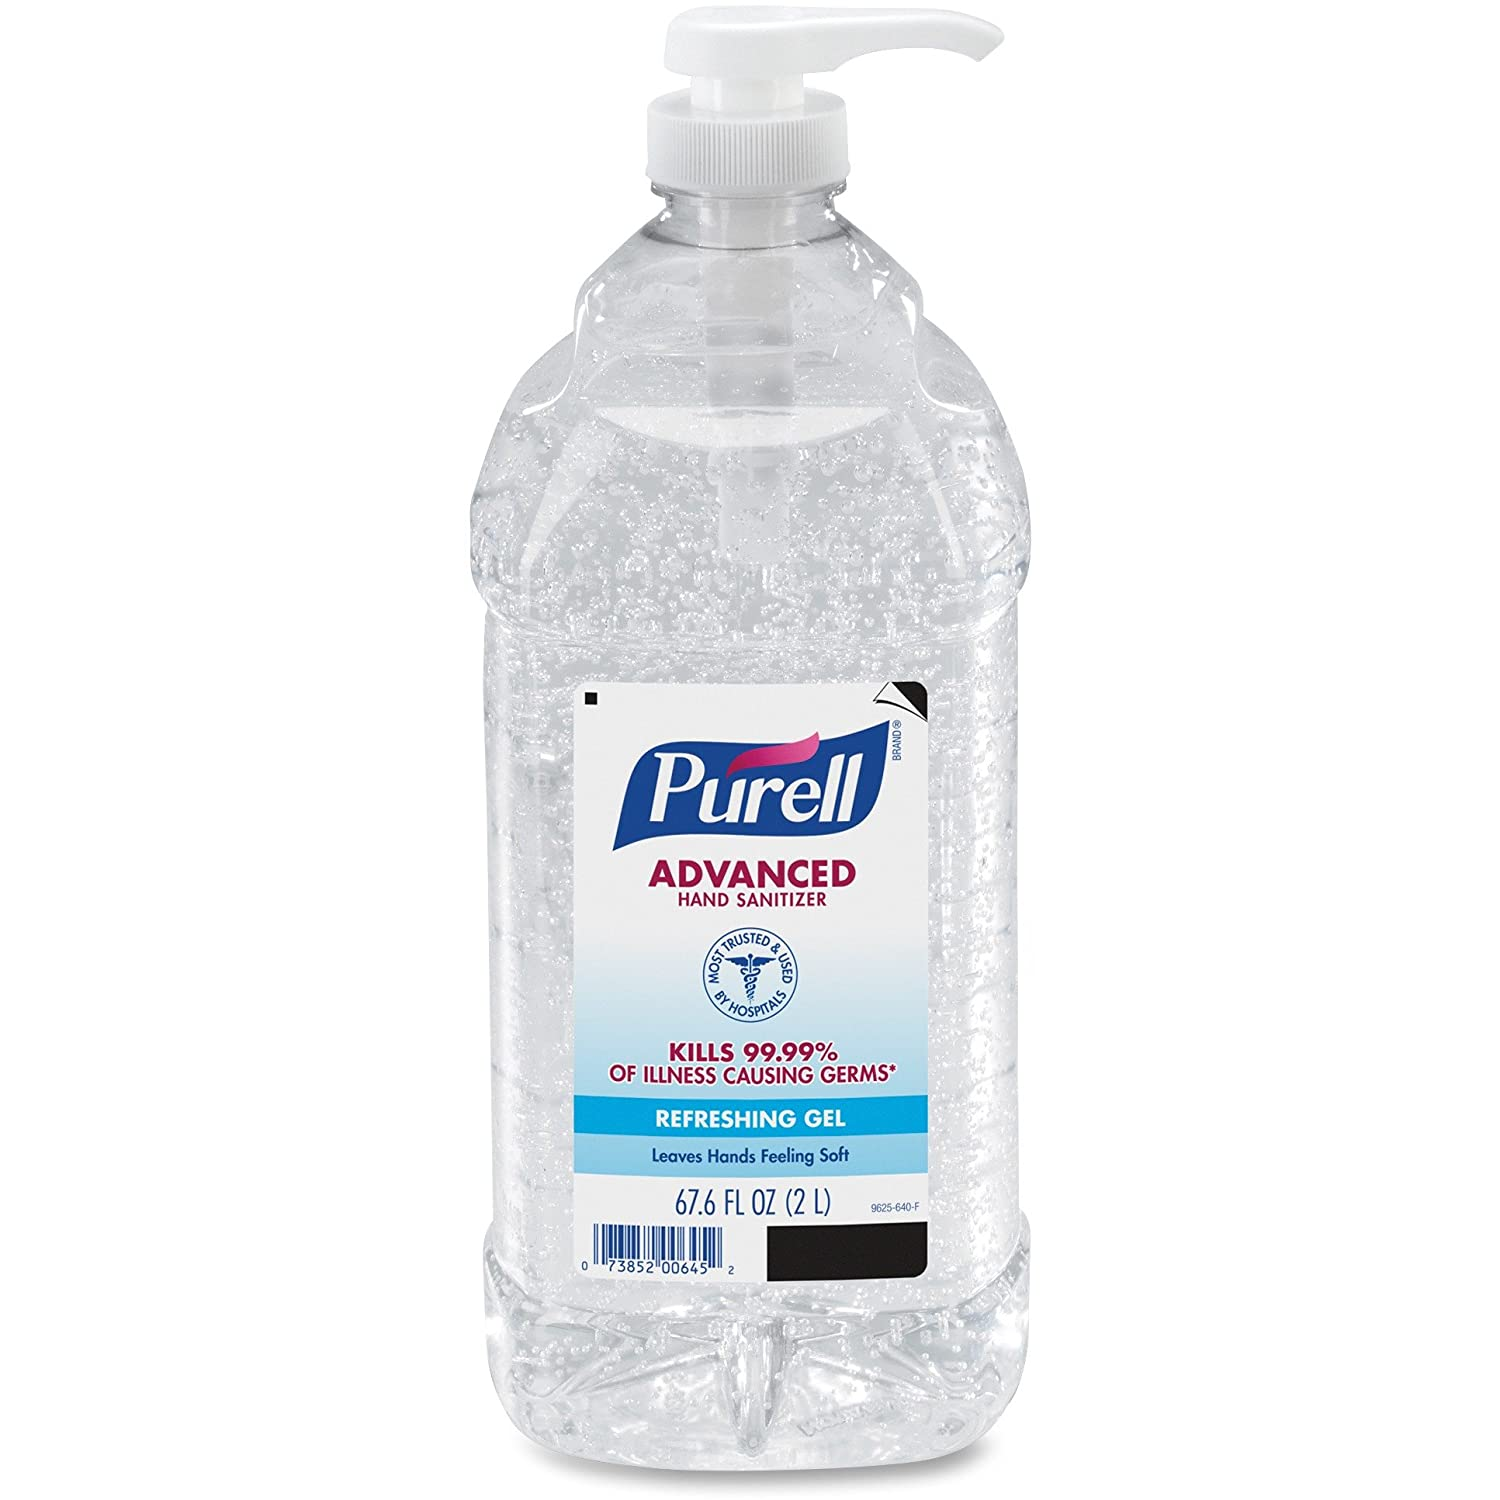 Advanced Hand 67% OFF of fixed Excellence price Sanitizer Refreshing Gel Clean Pump L Scent Bo 2